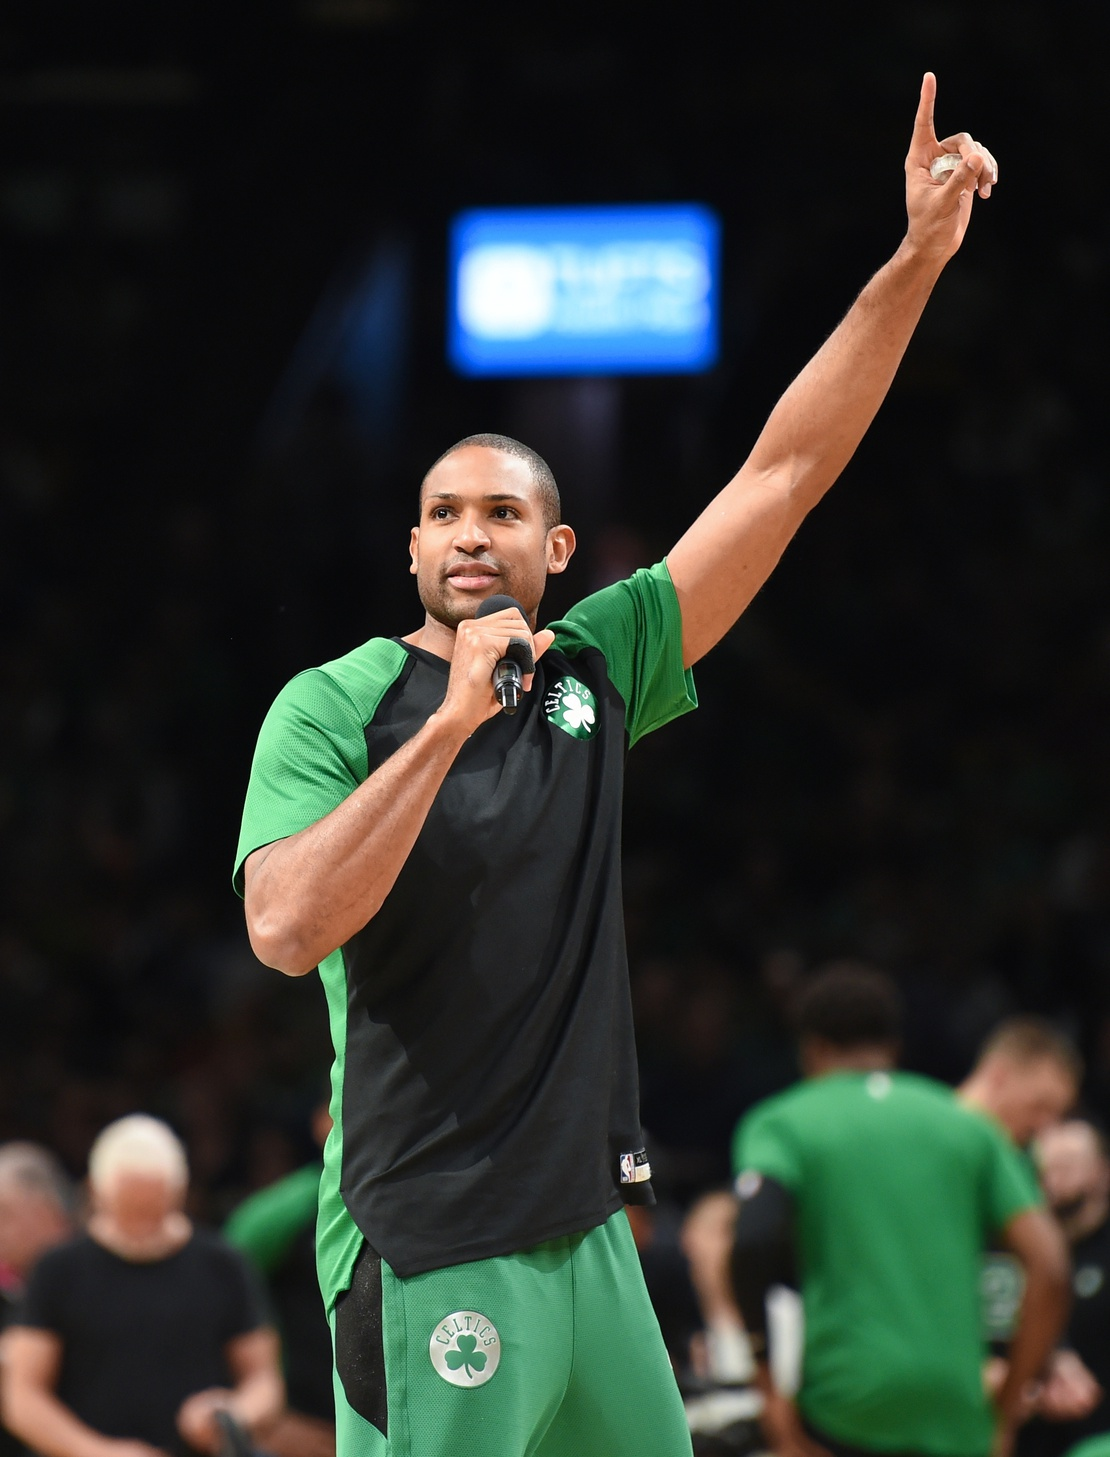 Al Horford's knowledge of a big payday elsewhere reportedly led to